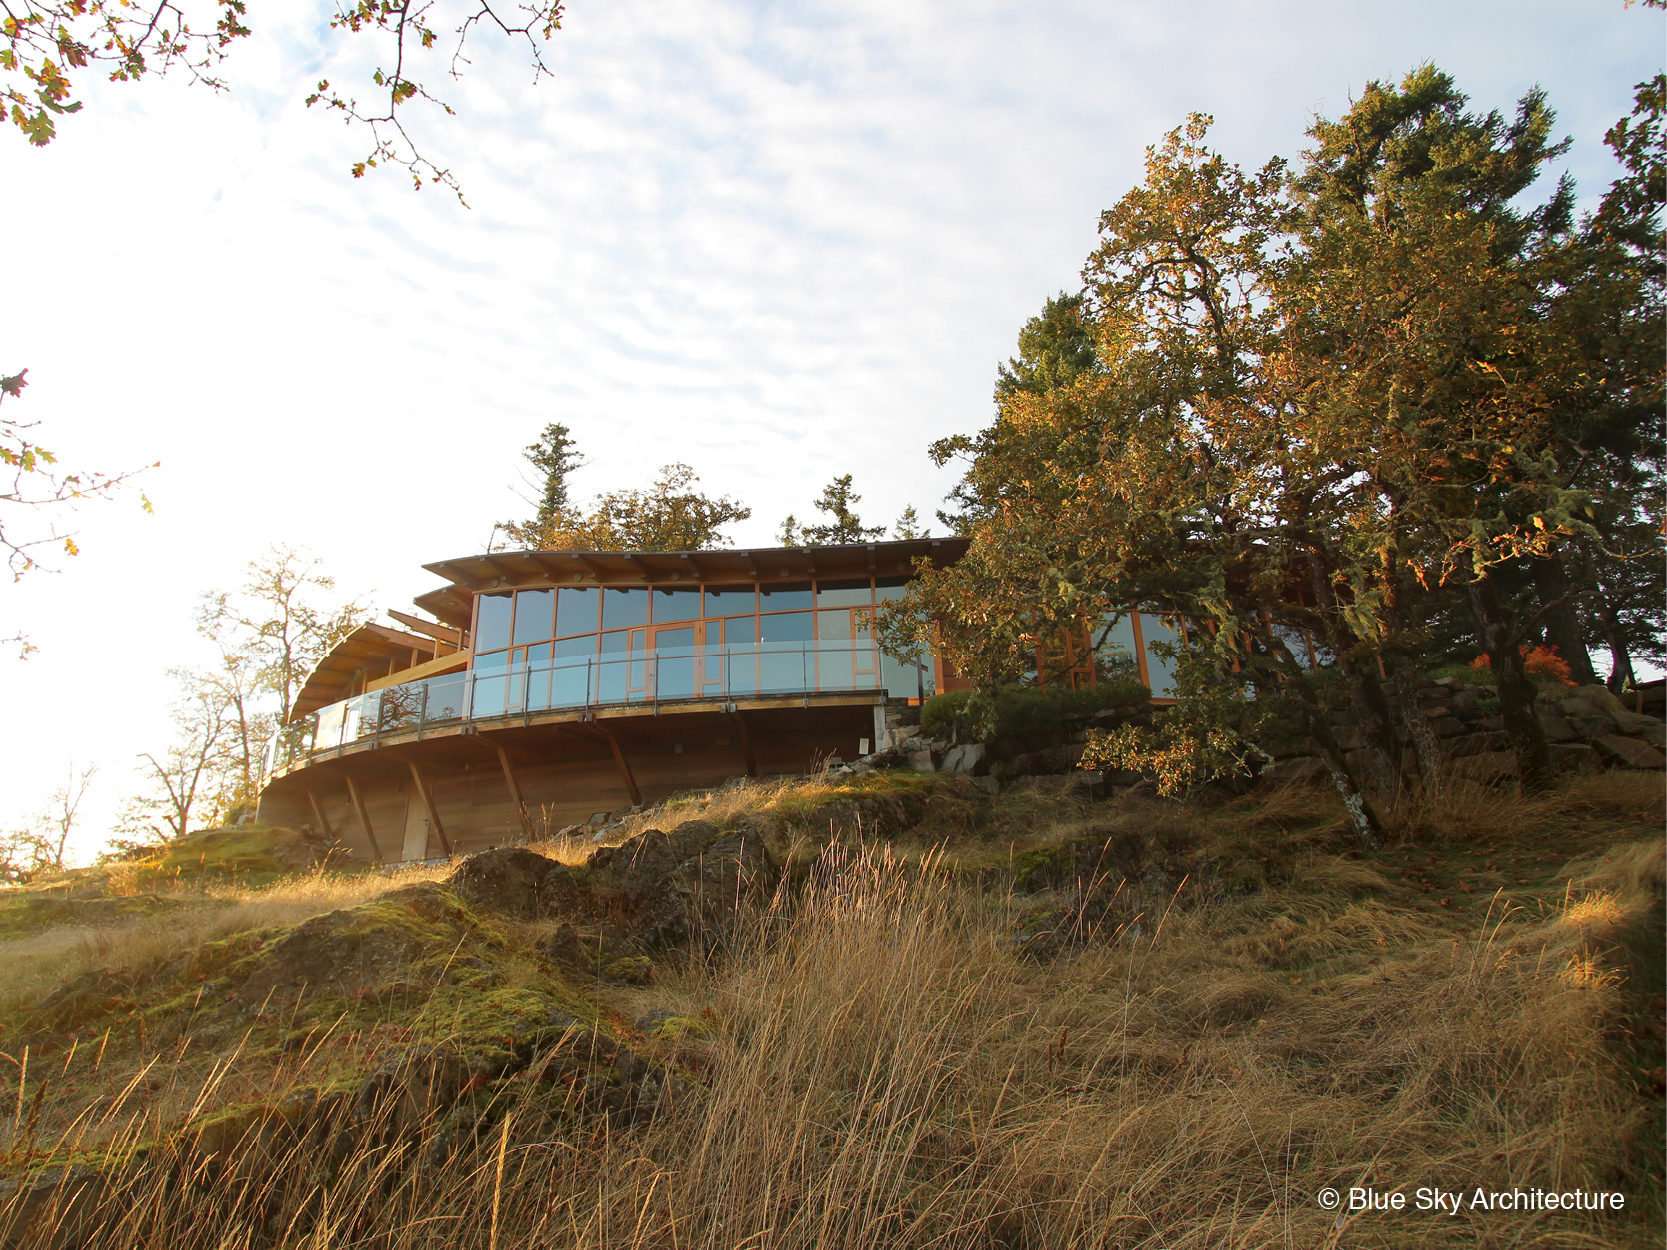 West Coast Modern house built on hillside with heavy timber